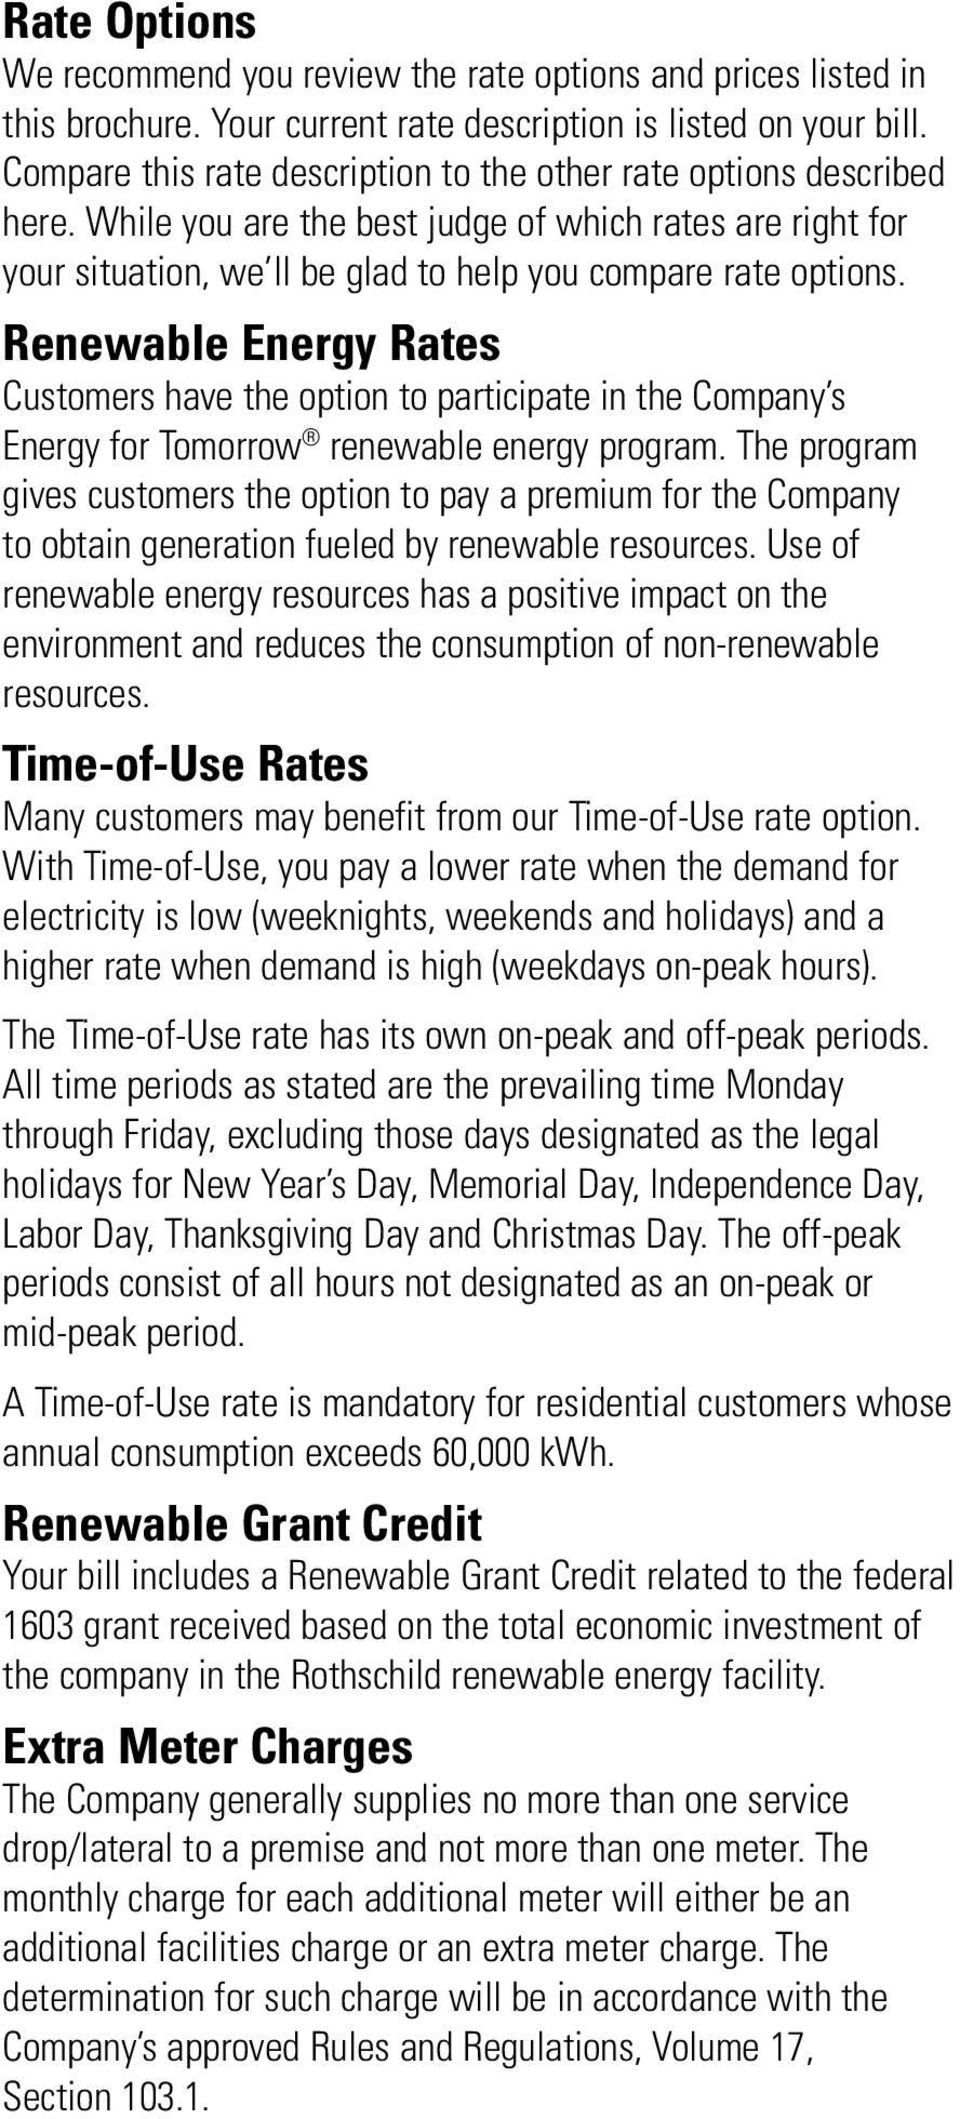 Renewable Energy Rates Customers have the option to participate in the Company s Energy for Tomorrow renewable energy program.